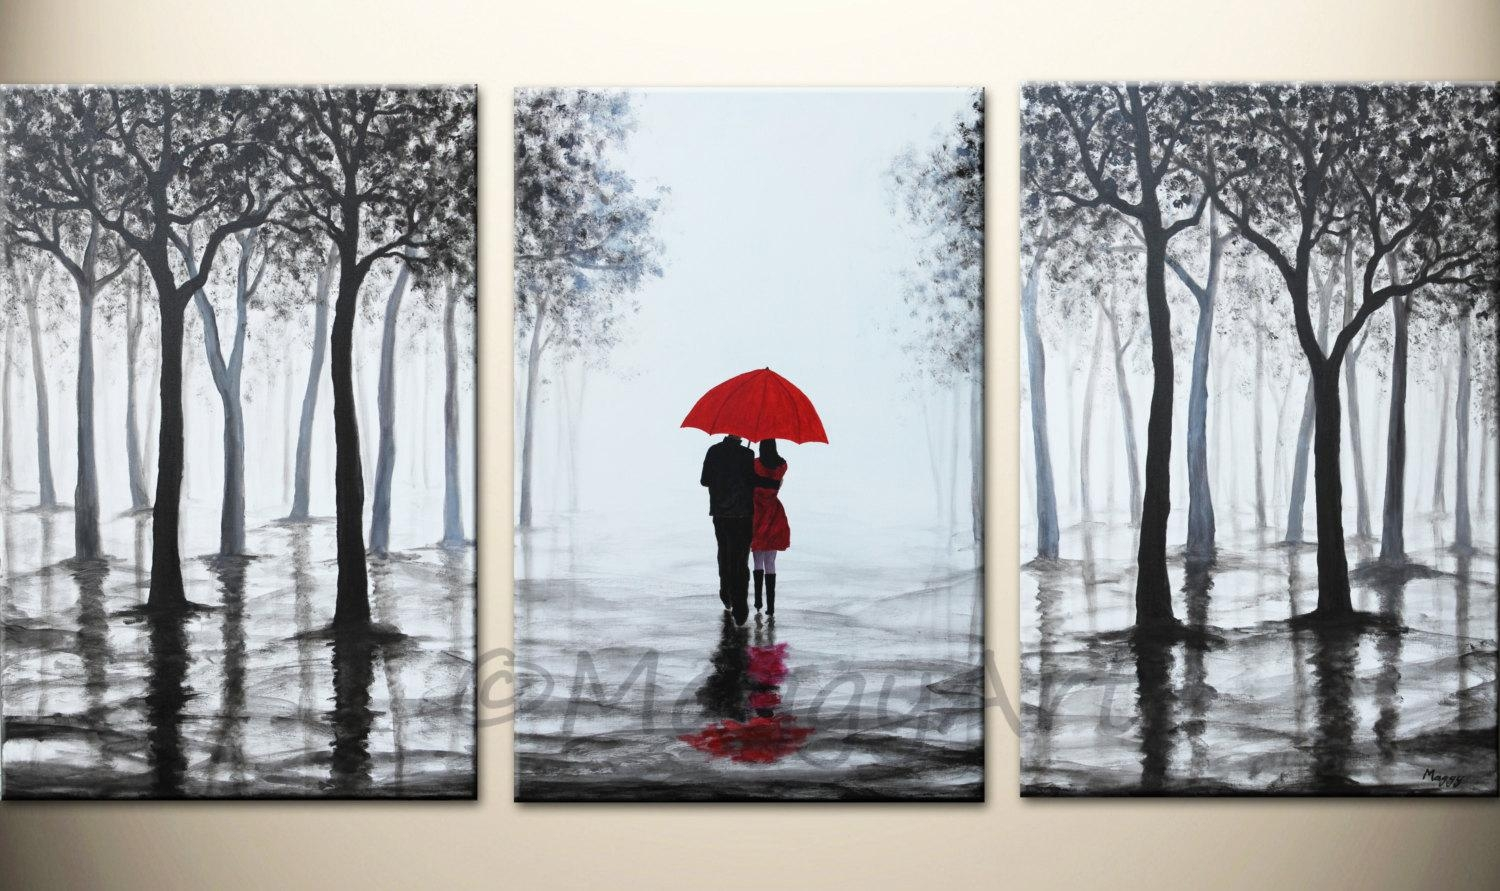 Original Acrylic Painting72X36 Inch Walking In Rain Black Pertaining To Black And White Wall Art With Red (View 12 of 20)